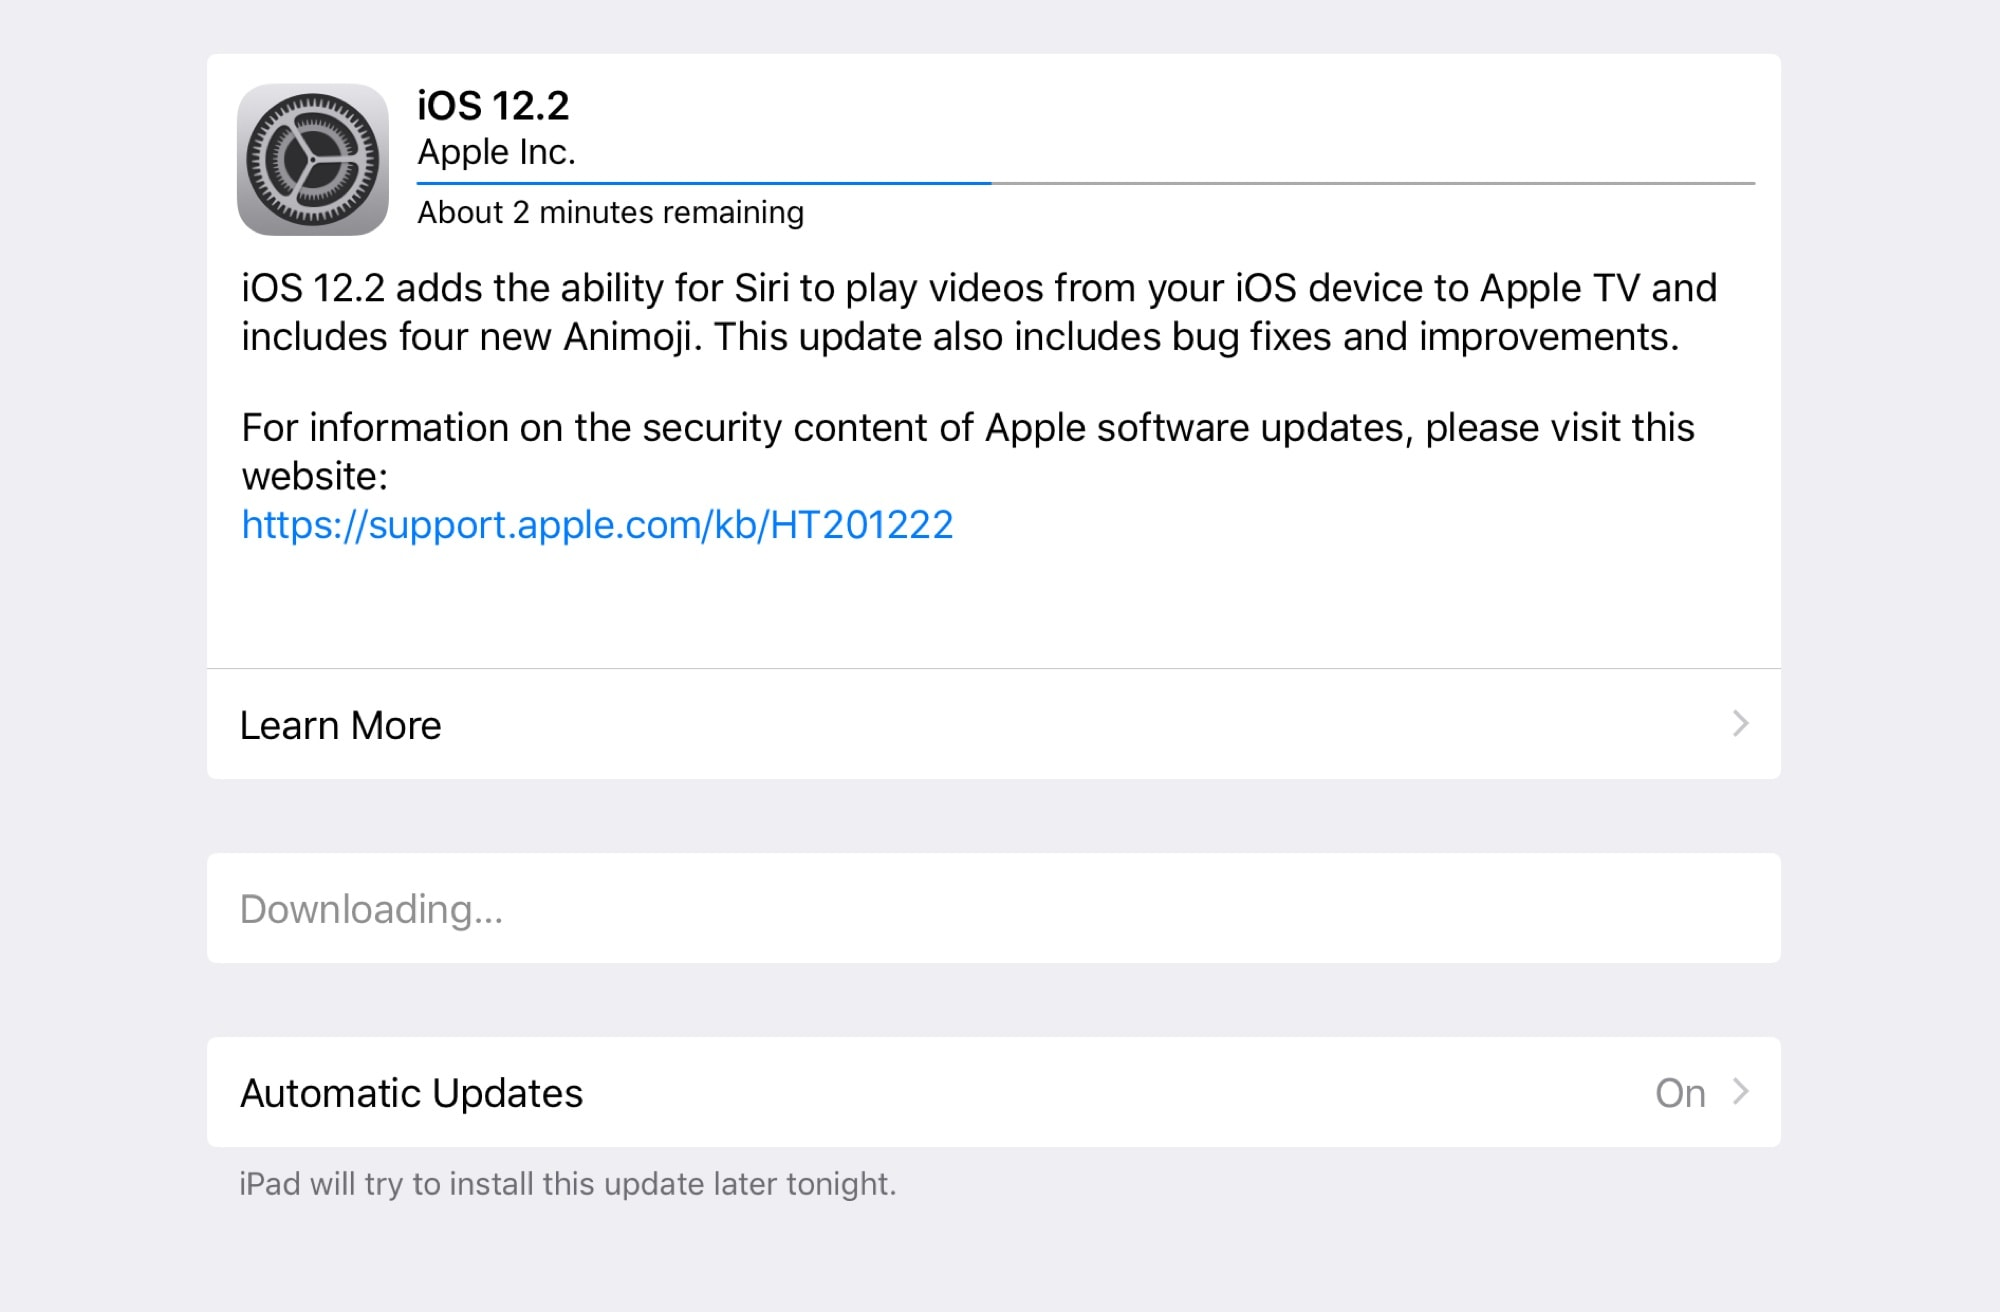 The new iOS 12.2 is available now.